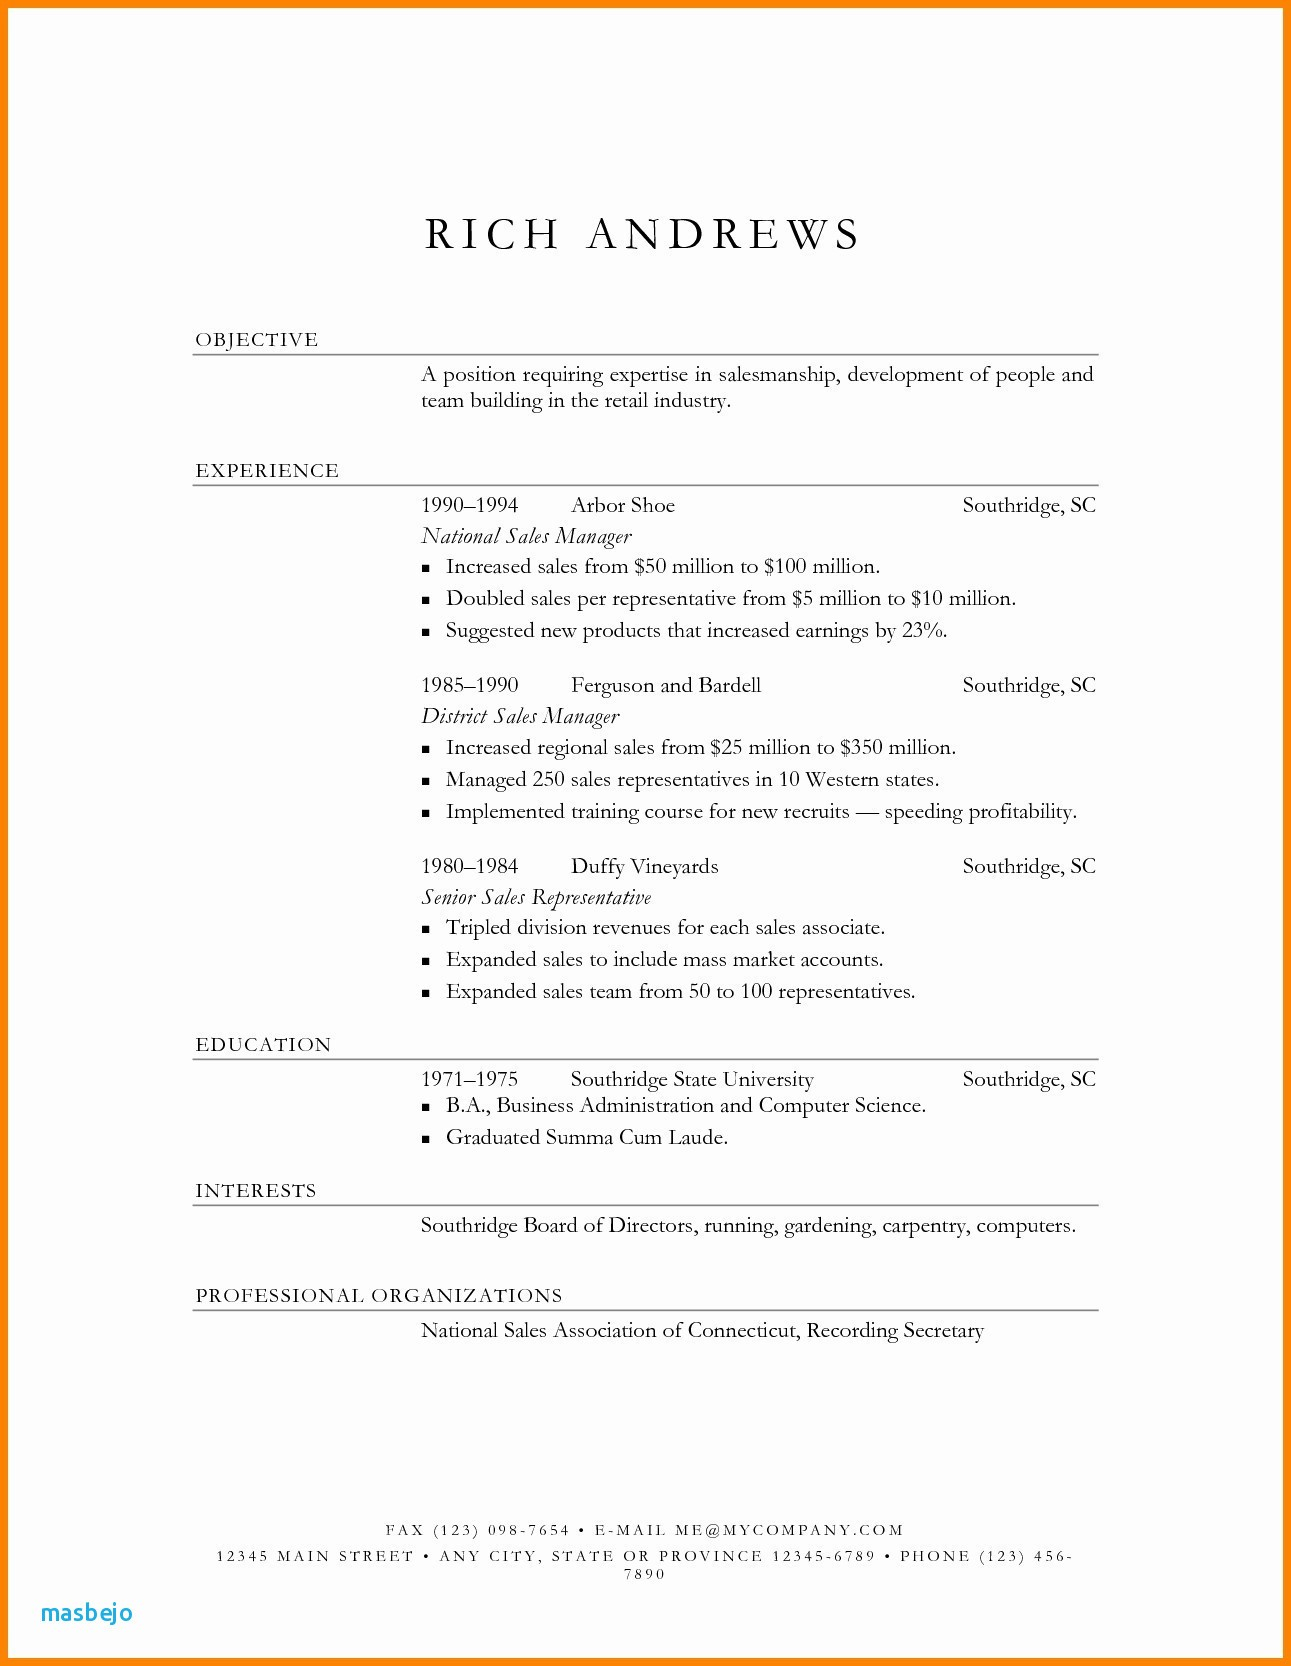 Resume Template for Computer Science - Puter Science Resume Template Fresh Puter Science Resume Template